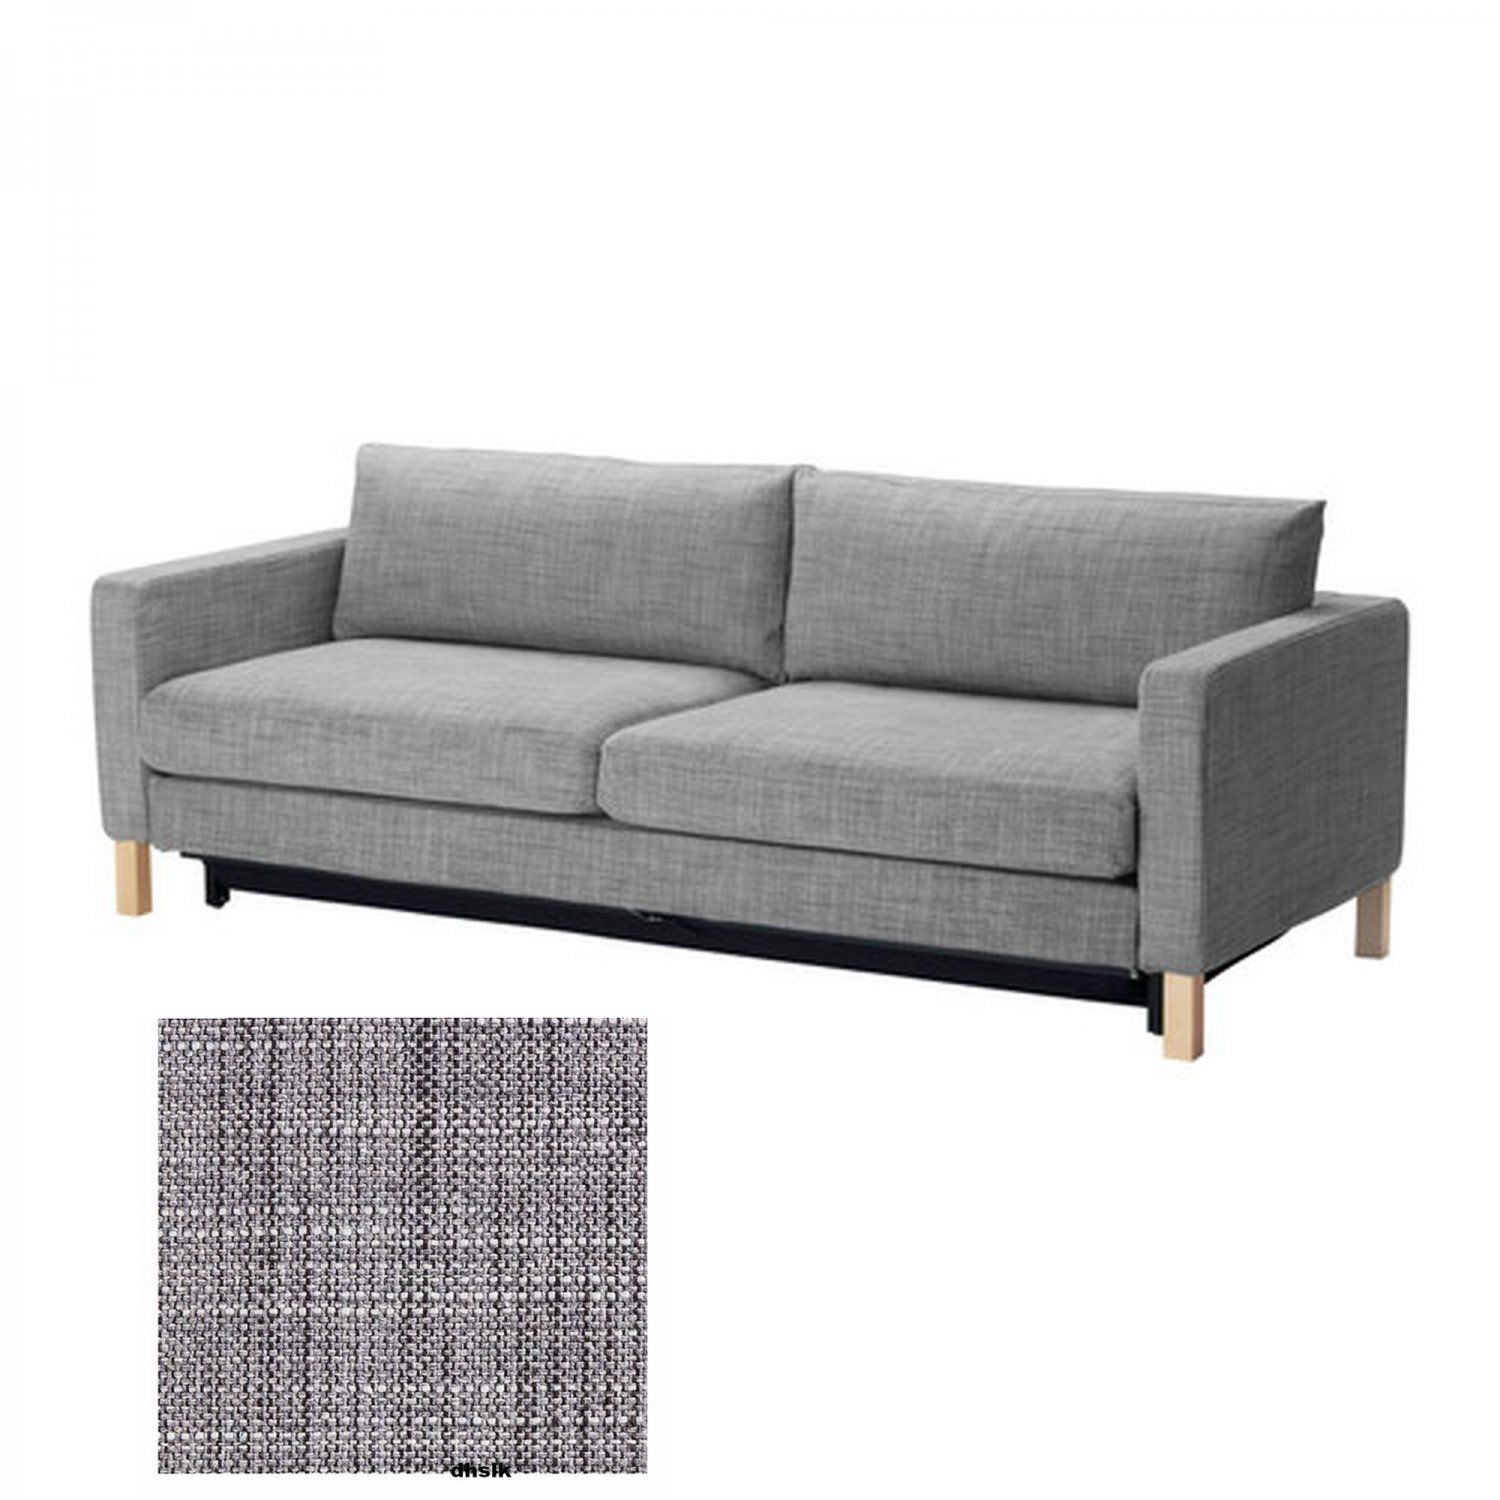 Beau Karlstad Sofa Bed Cover Isunda Grey